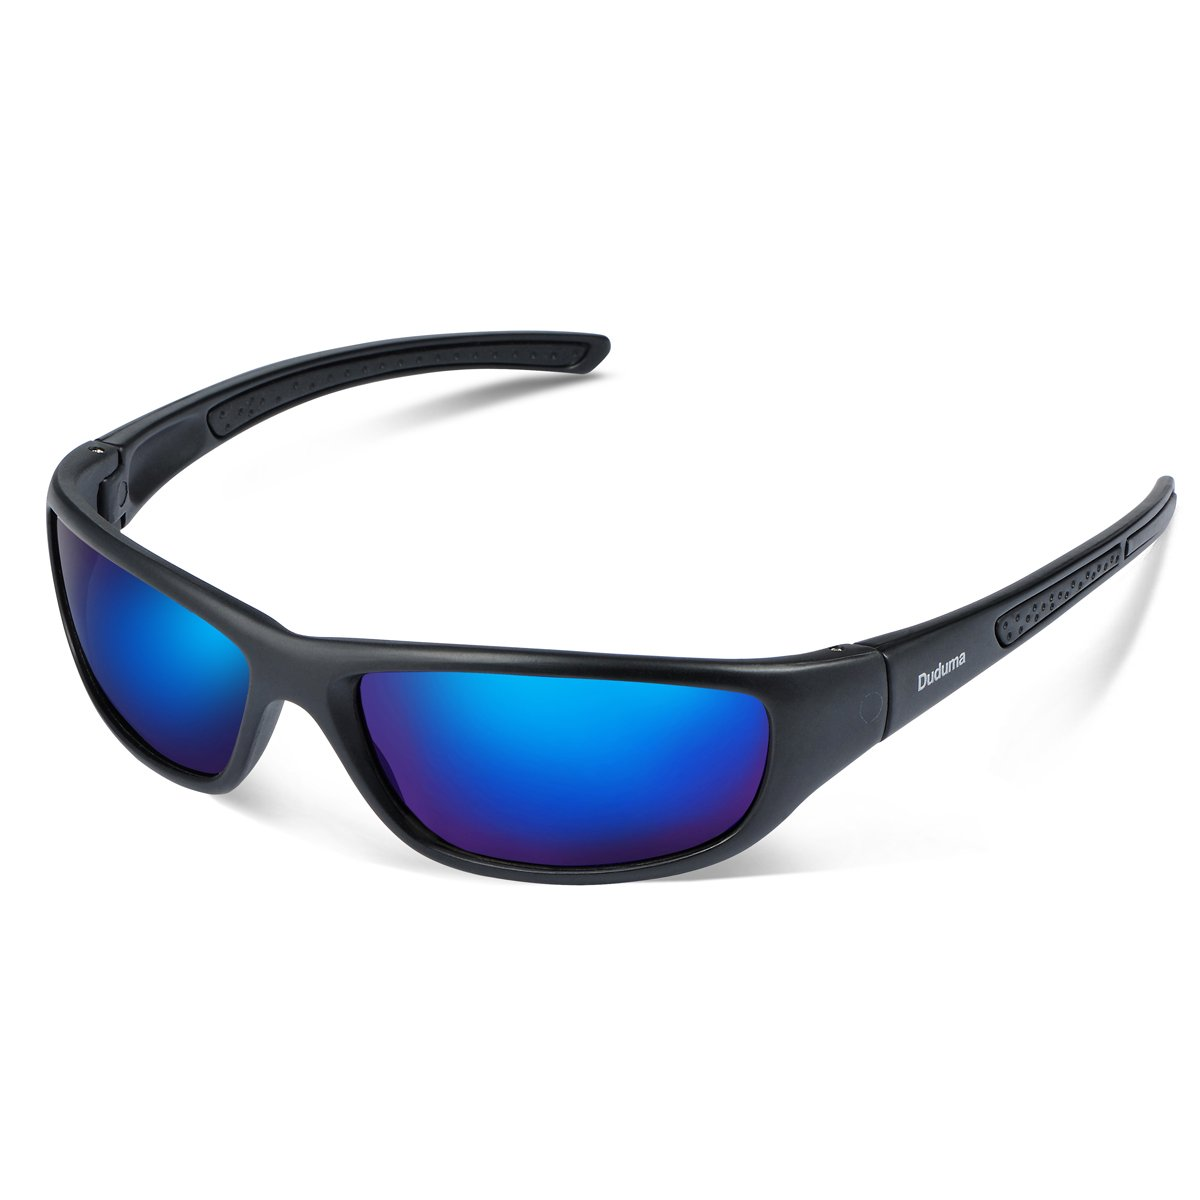 eb25f561480 Duduma Tr8116 Polarised Sports Sunglasses for Mens and Womens Design for  Ski Baseball Golf Cycling Fishing